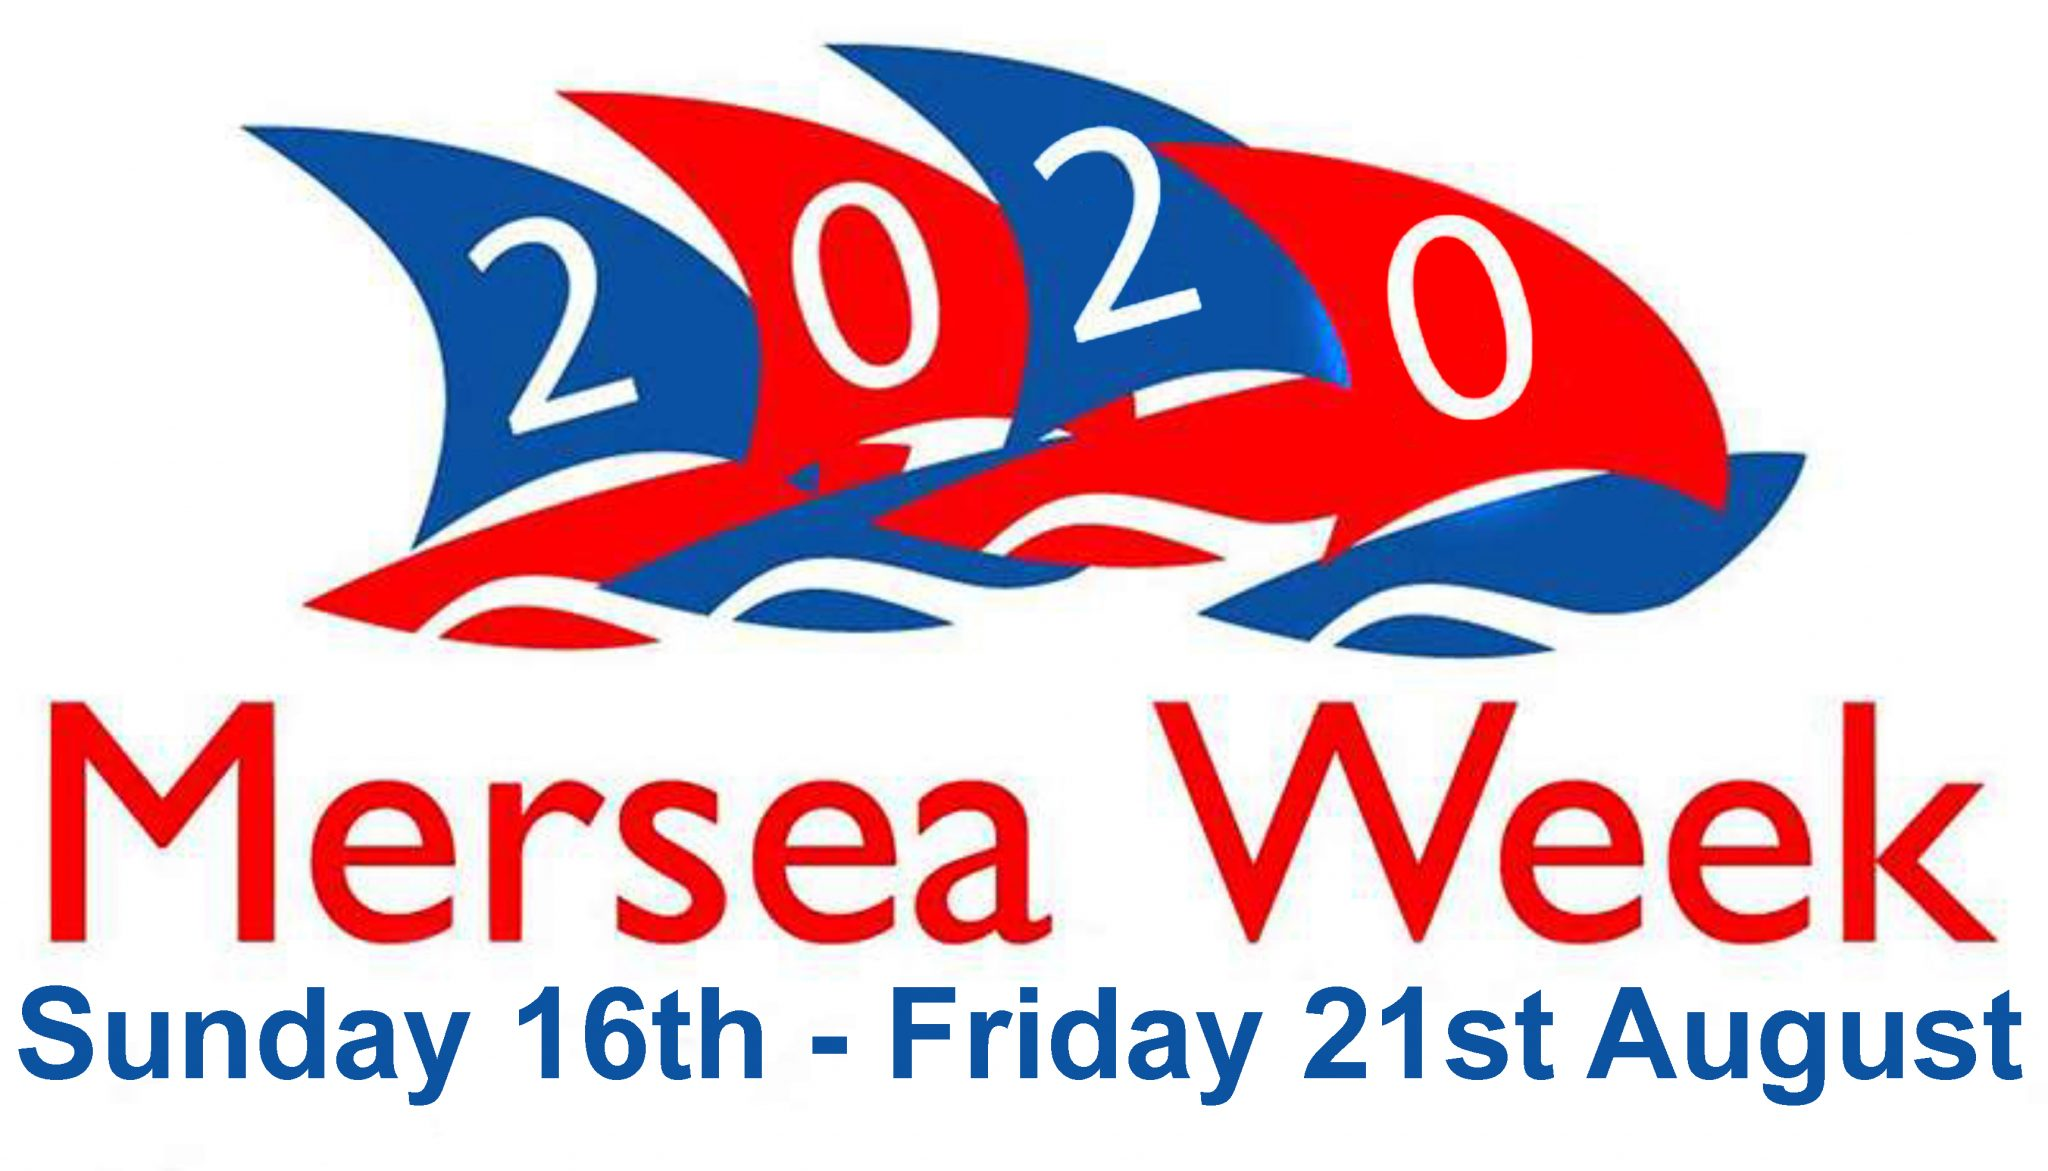 Mersea Week 2020